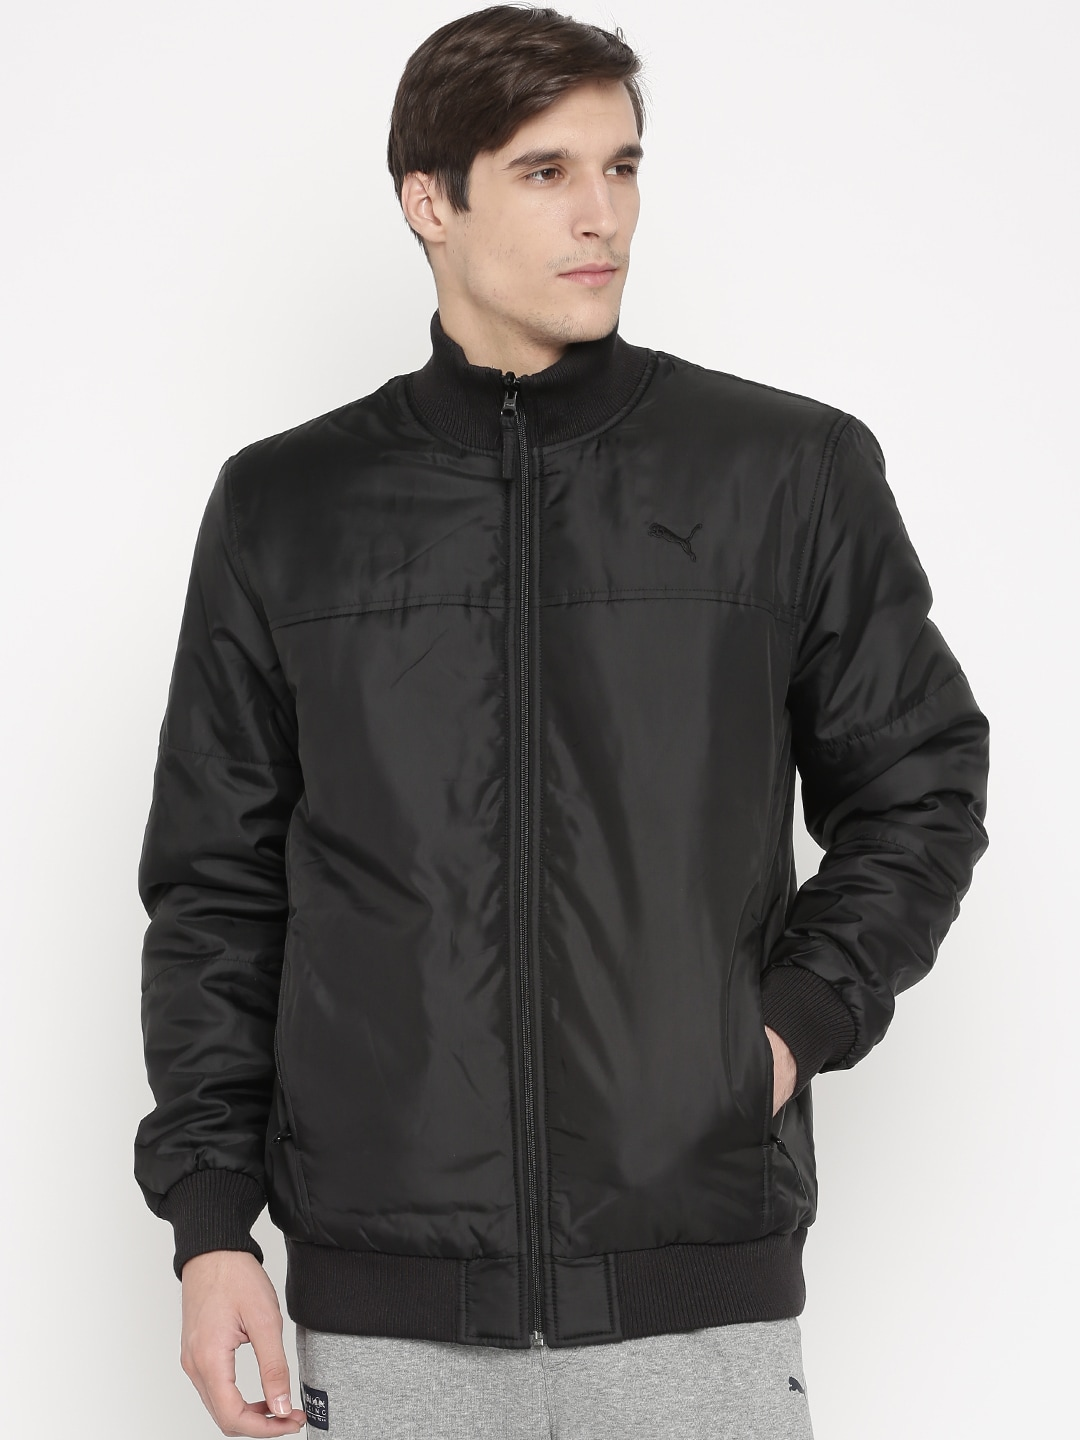 ac3aba95a544 Puma 51438301 Mens Synthetic Track Jacket - Best Price in India ...